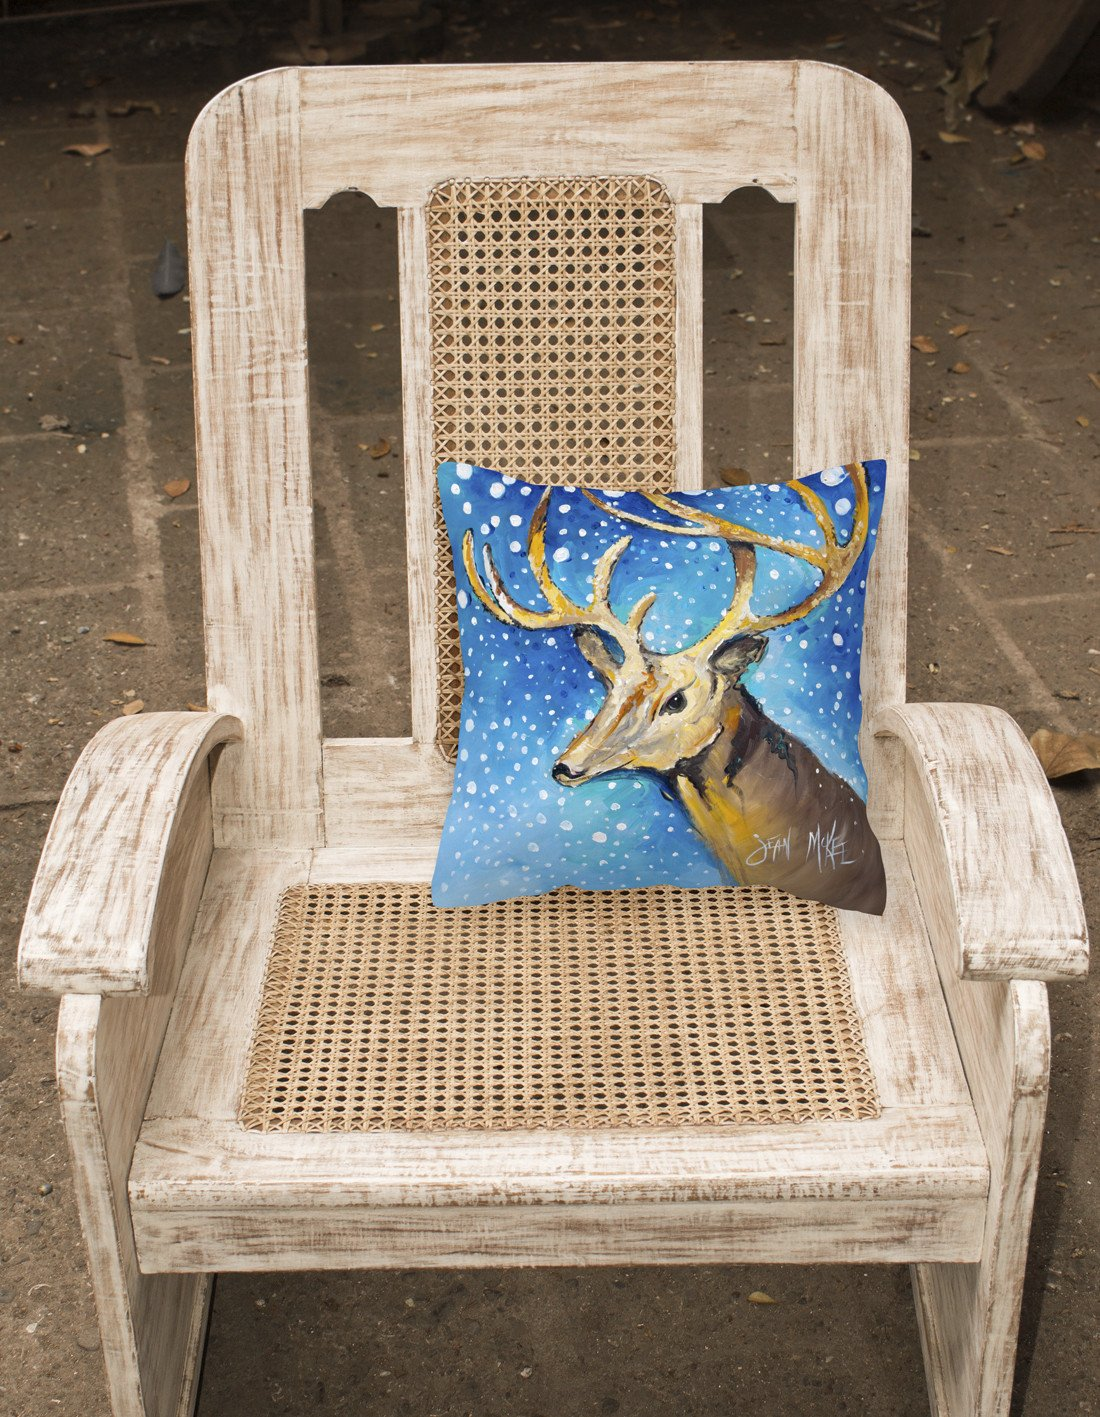 Reindeer Canvas Fabric Decorative Pillow JMK1206PW1414 by Caroline's Treasures